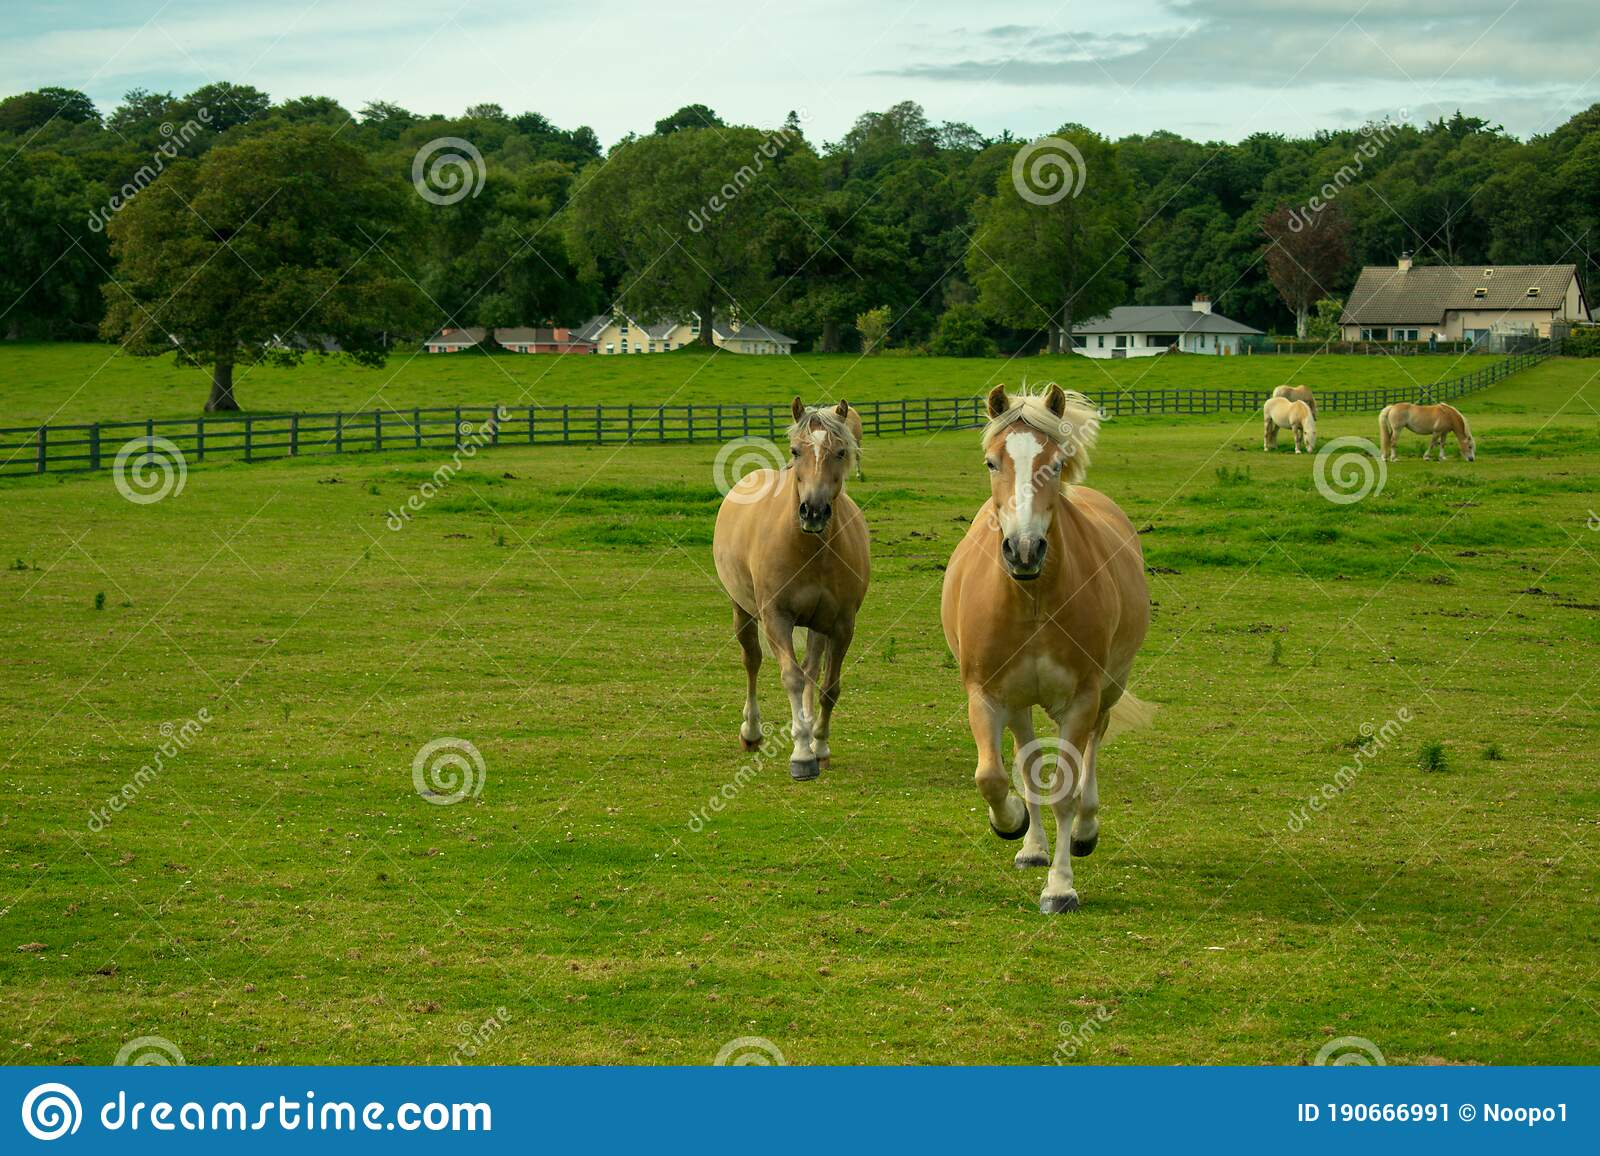 334 Palomino Horses Running Photos Free Royalty Free Stock Photos From Dreamstime